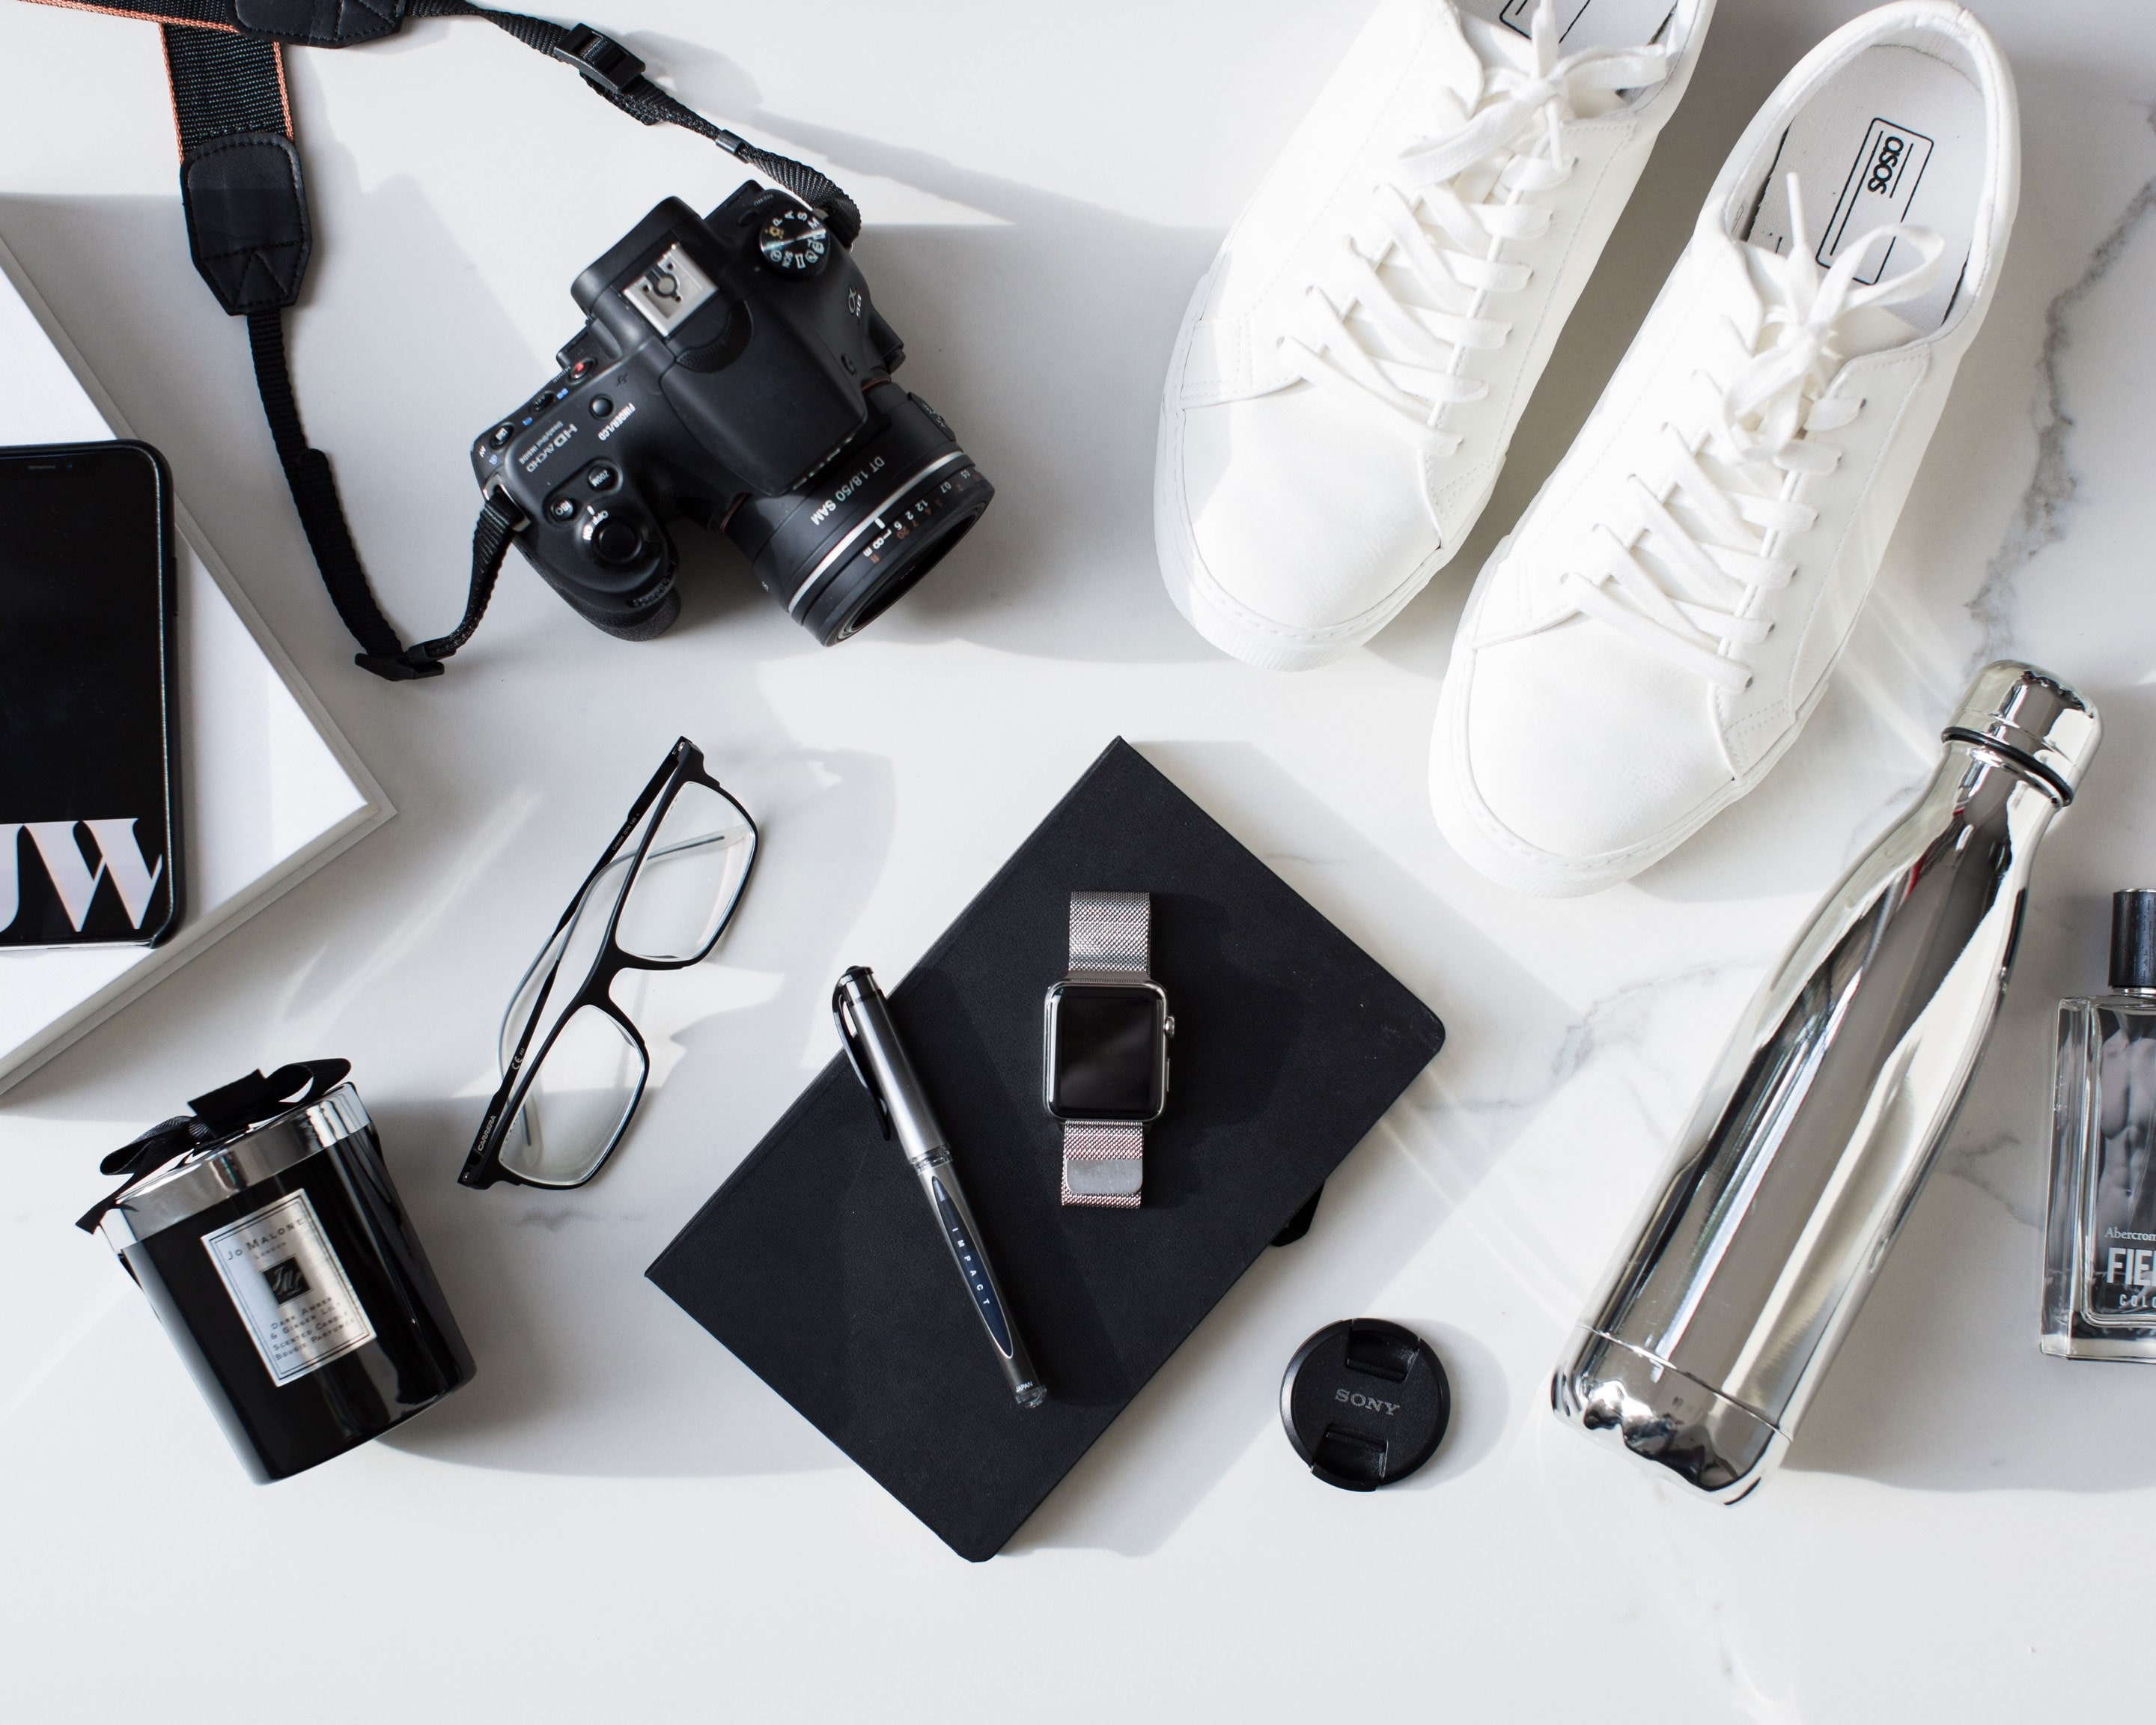 Flat lay of Jack Watkins objects including camera, Apple Watch, Chillys bottle, A&F aftershave, Jo Malone candle, glasses, iPhone and more